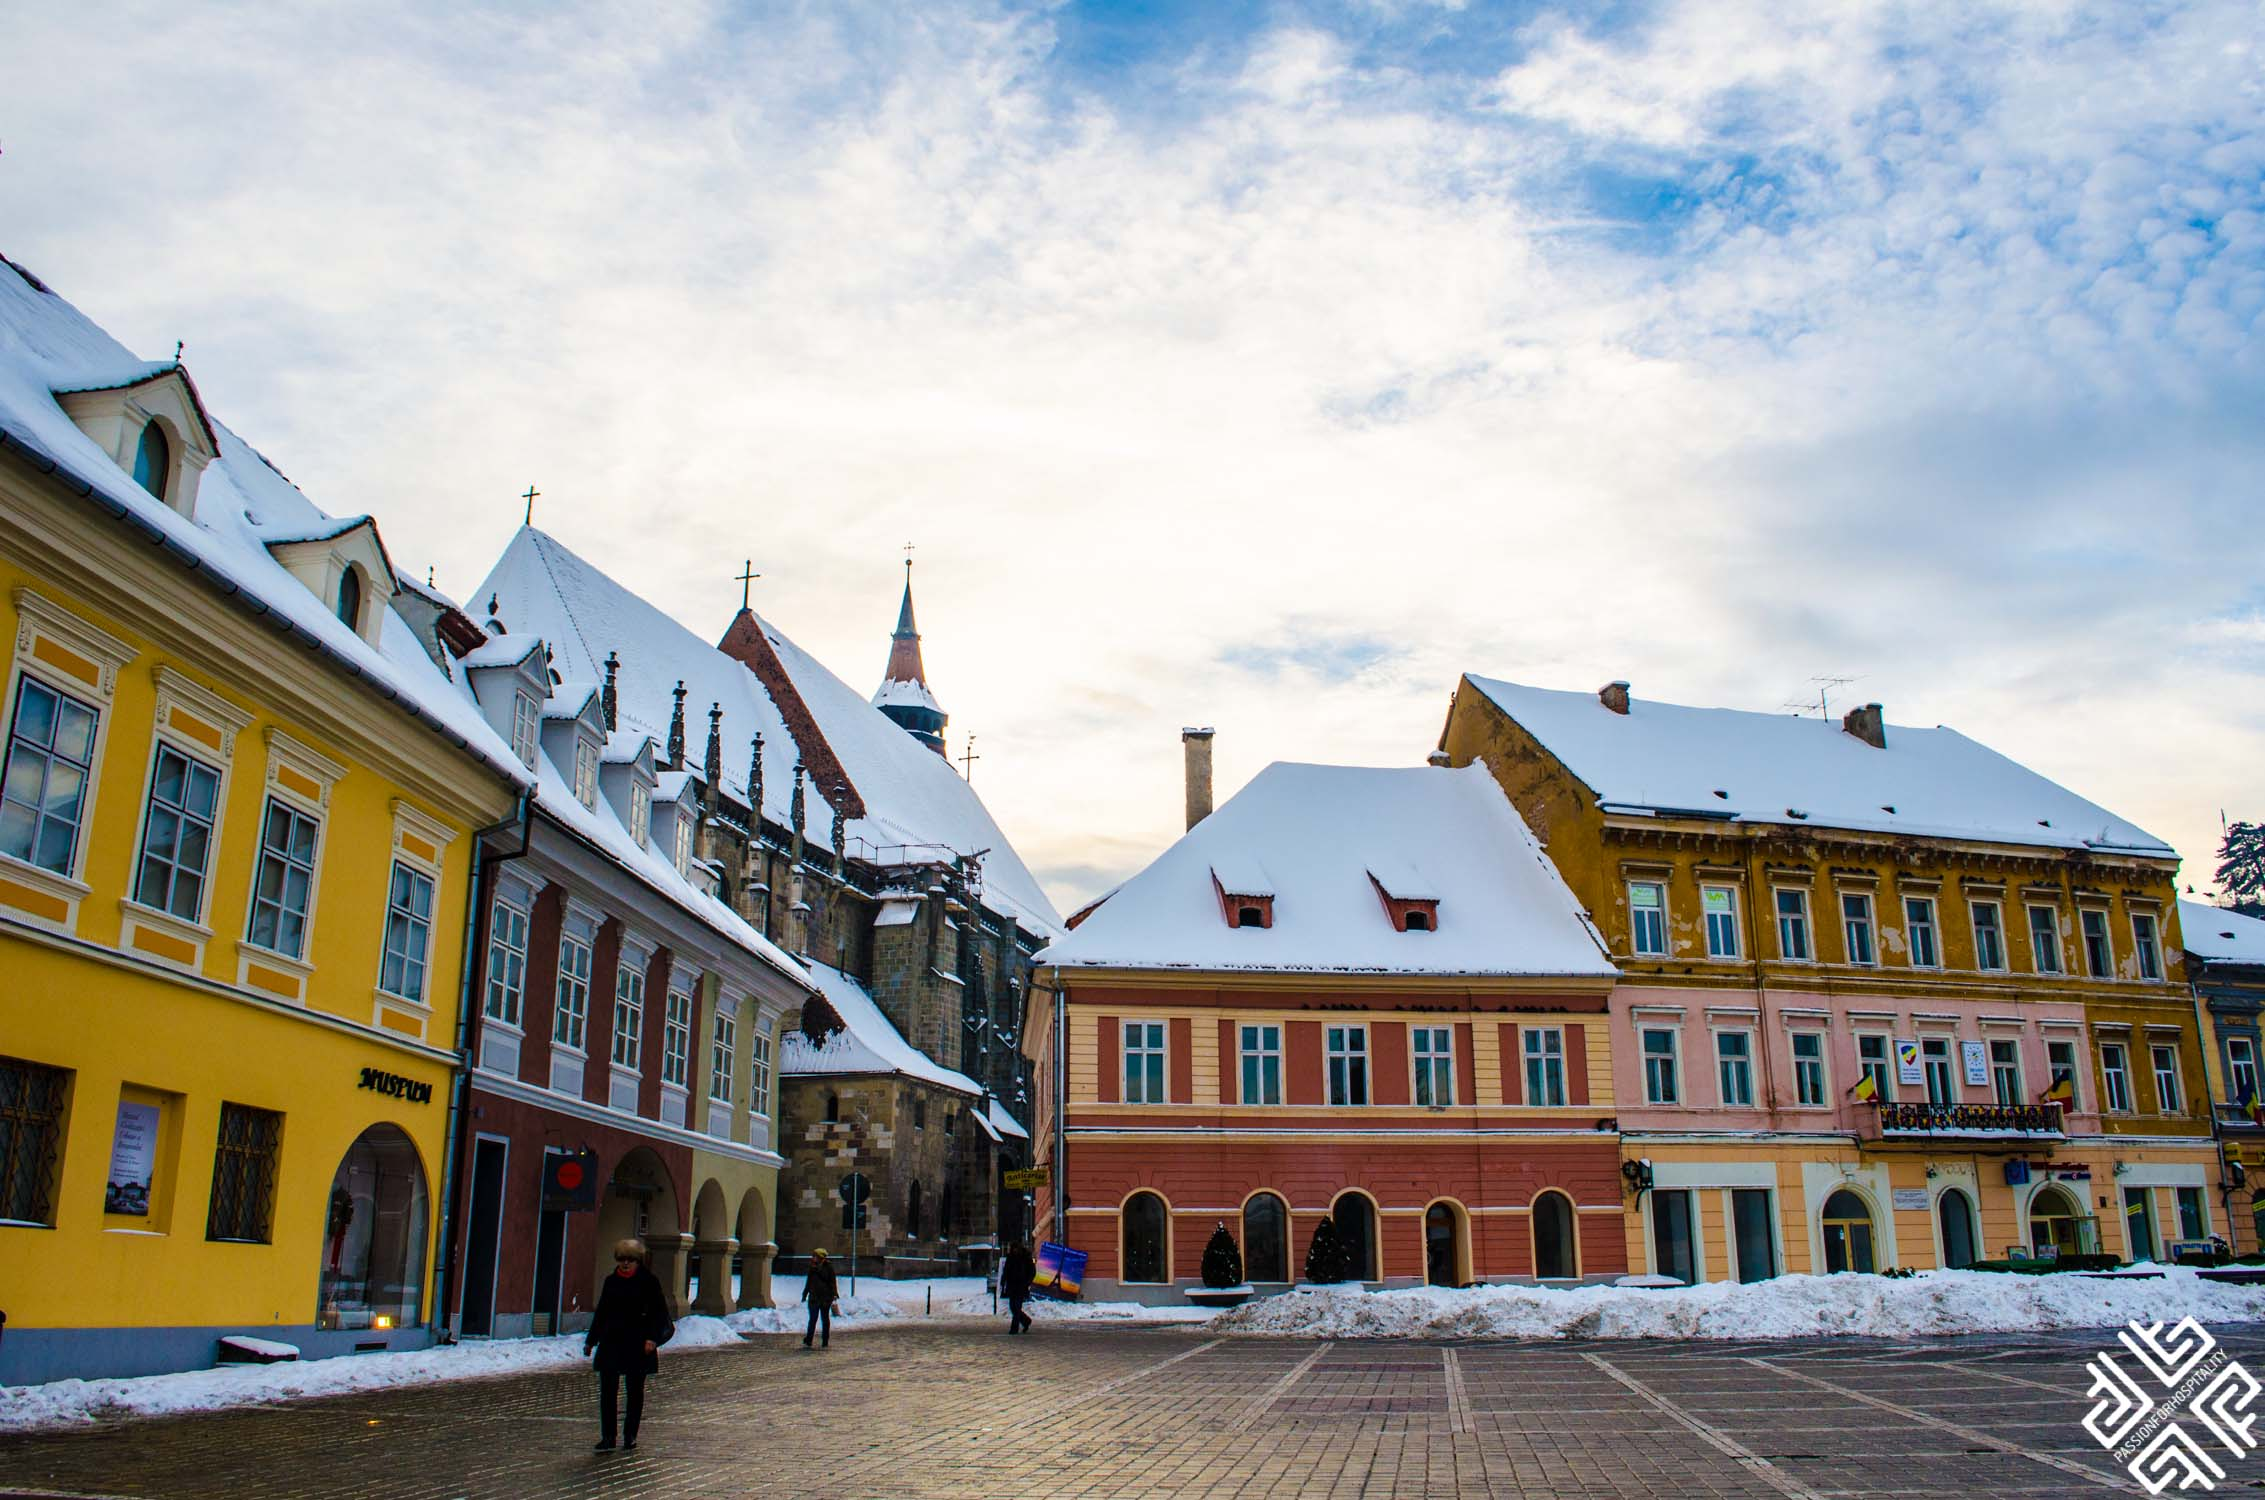 Welcome to Romania's Hollywood: Dracula, the Fairytale Castles and Brasov